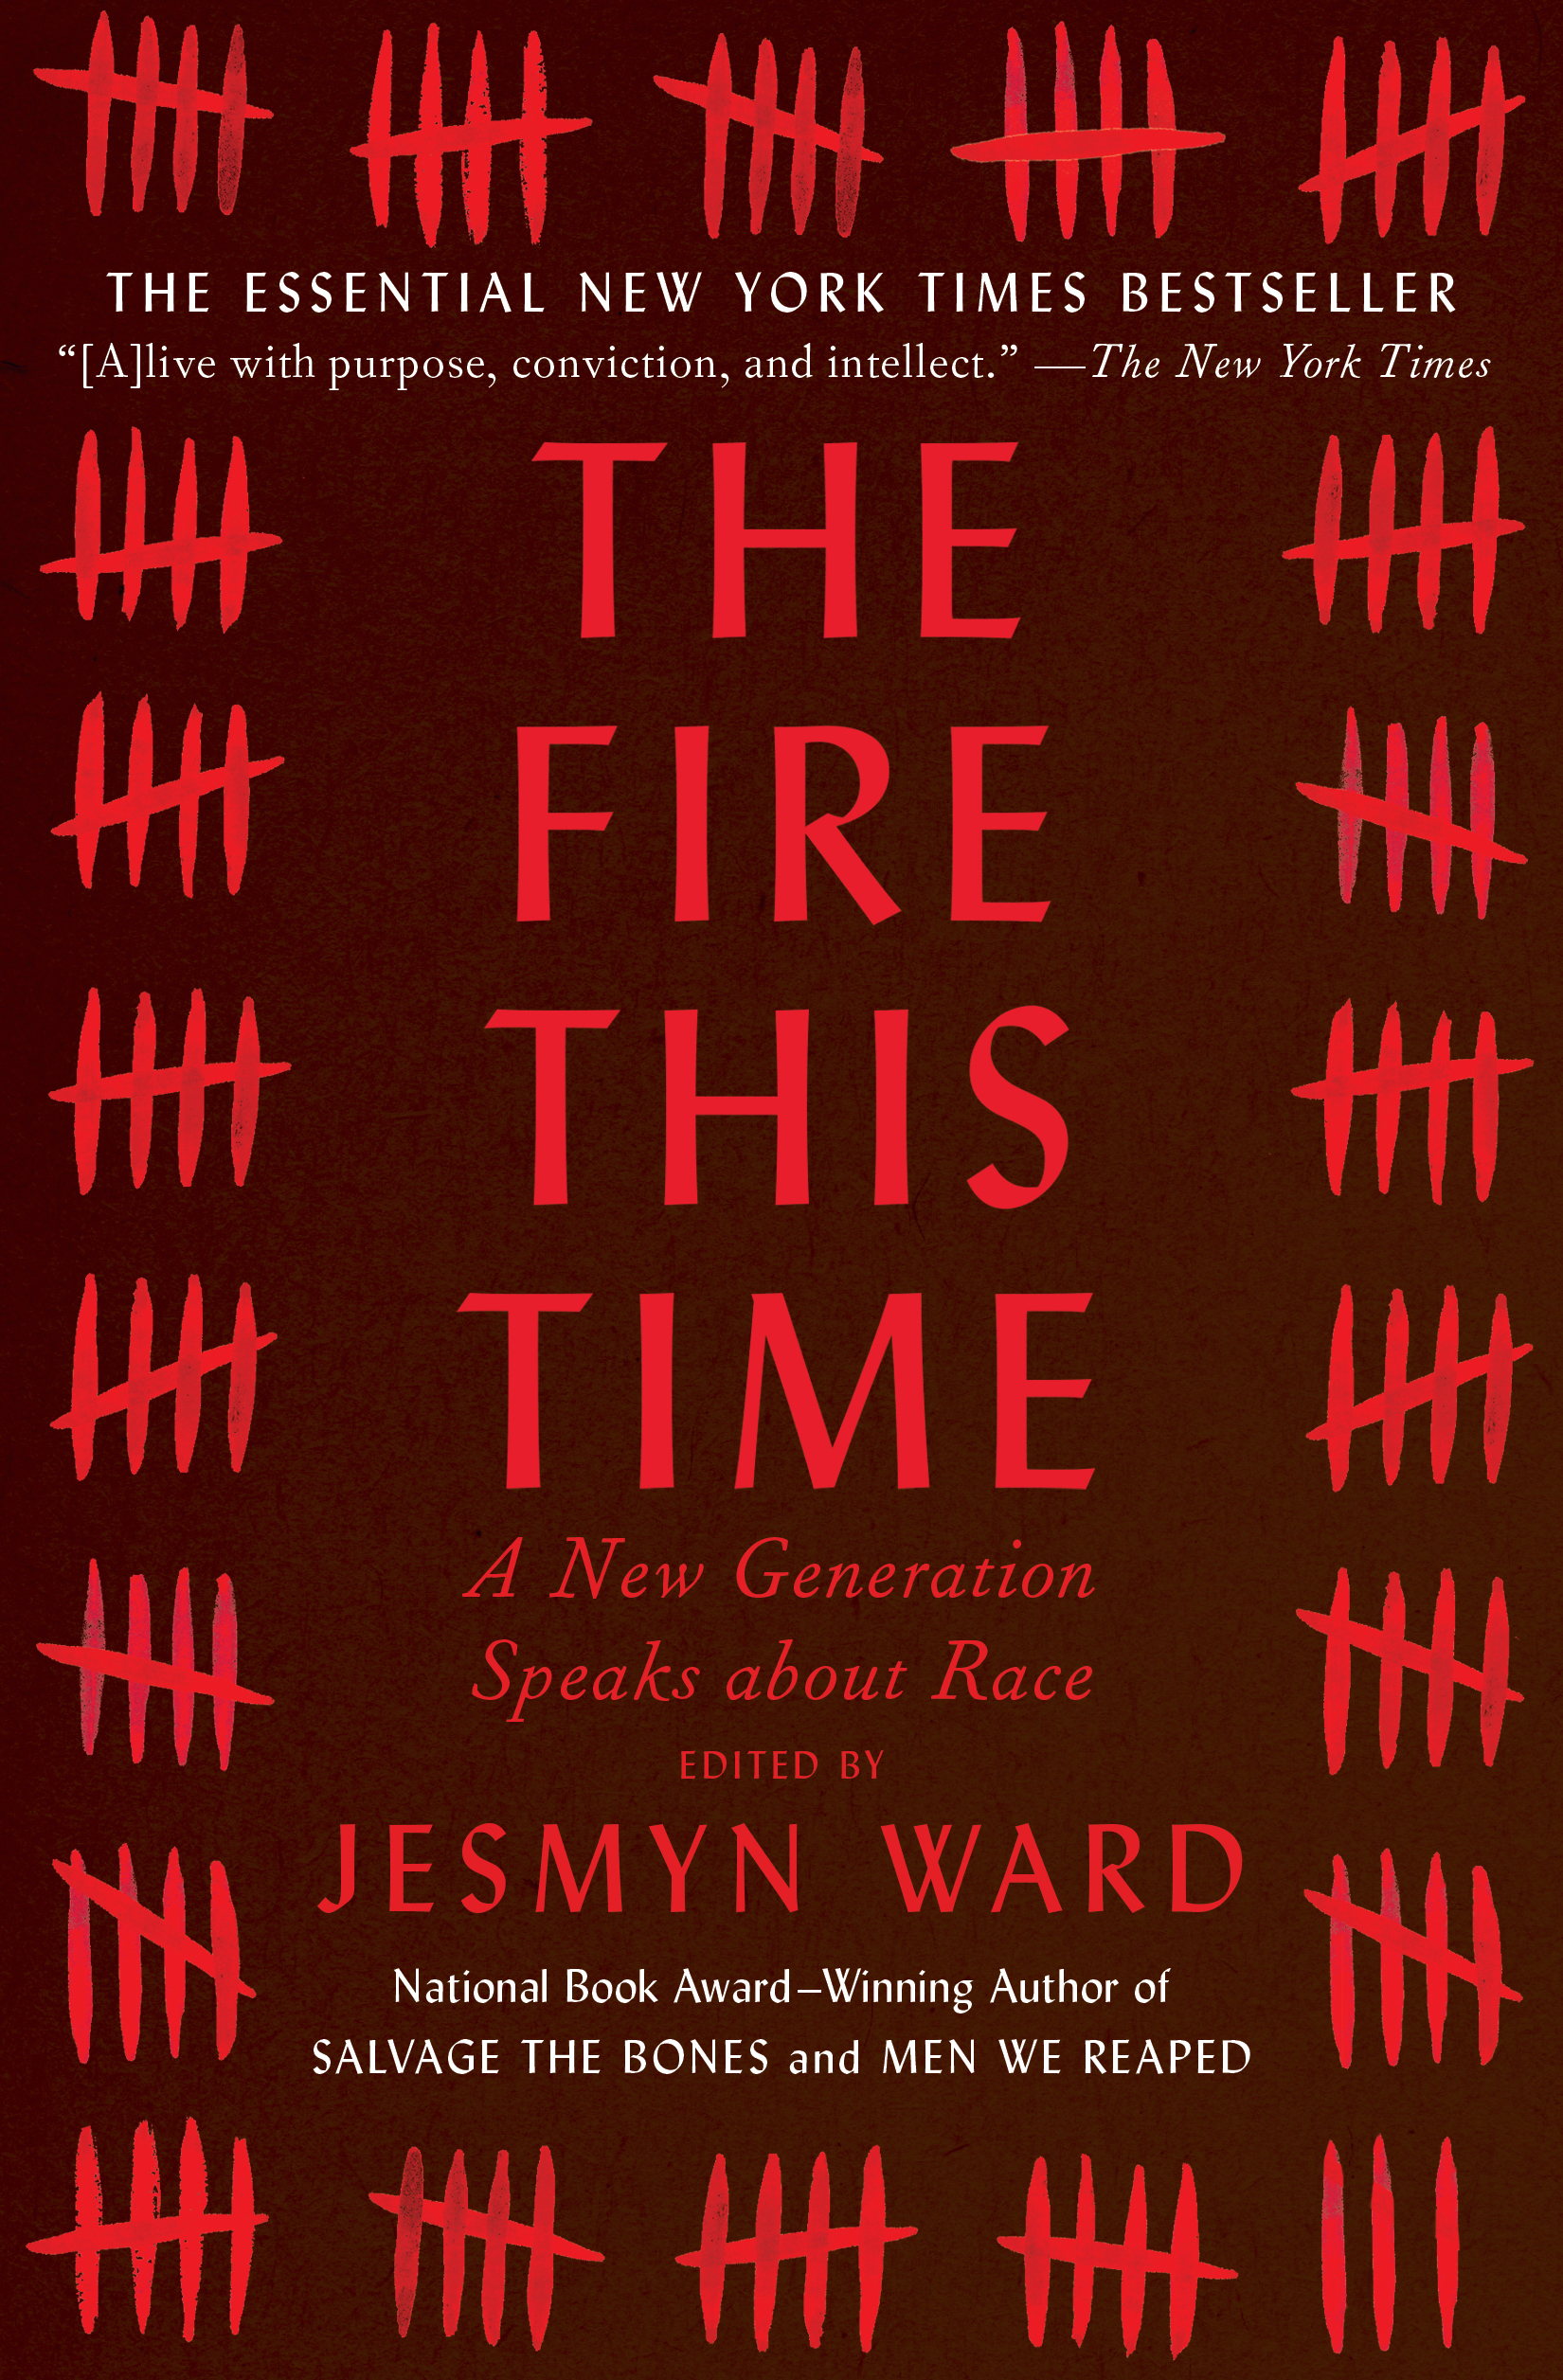 Jesmyn Ward 'The Fire This Time' Book Cover